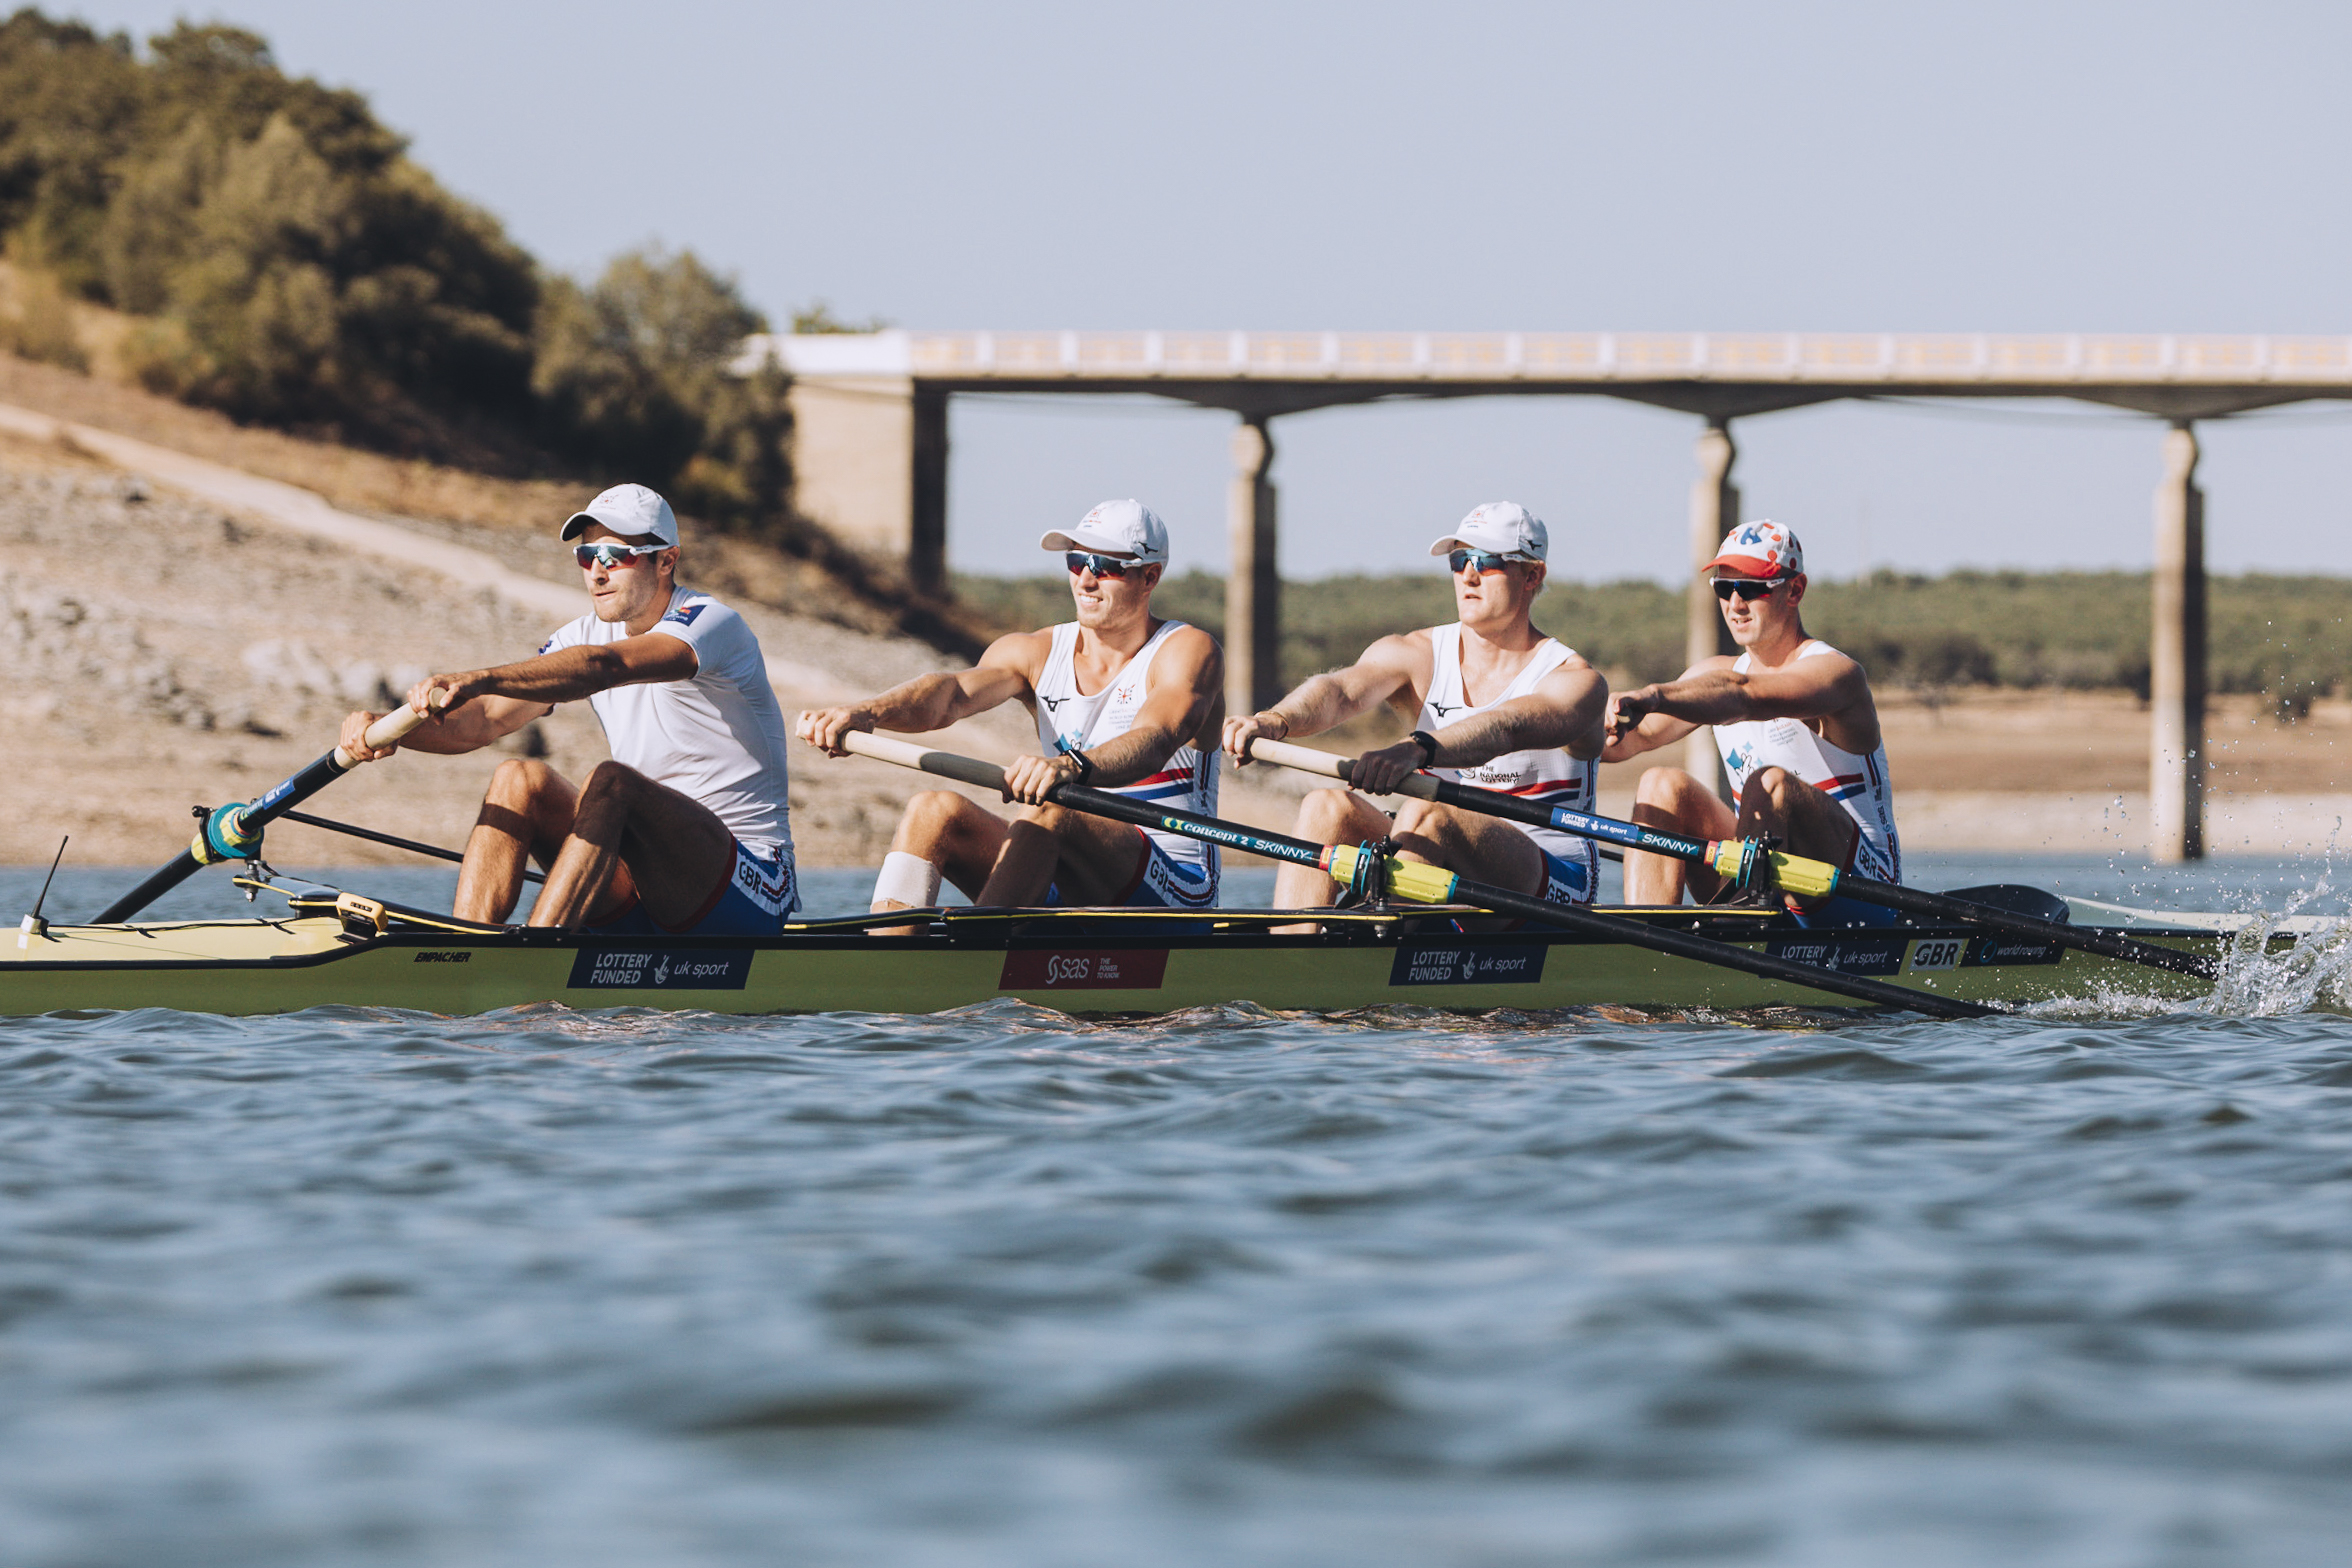 Matt and his crewmates on camp in Aviz, 2019. Credit Nick Middleton